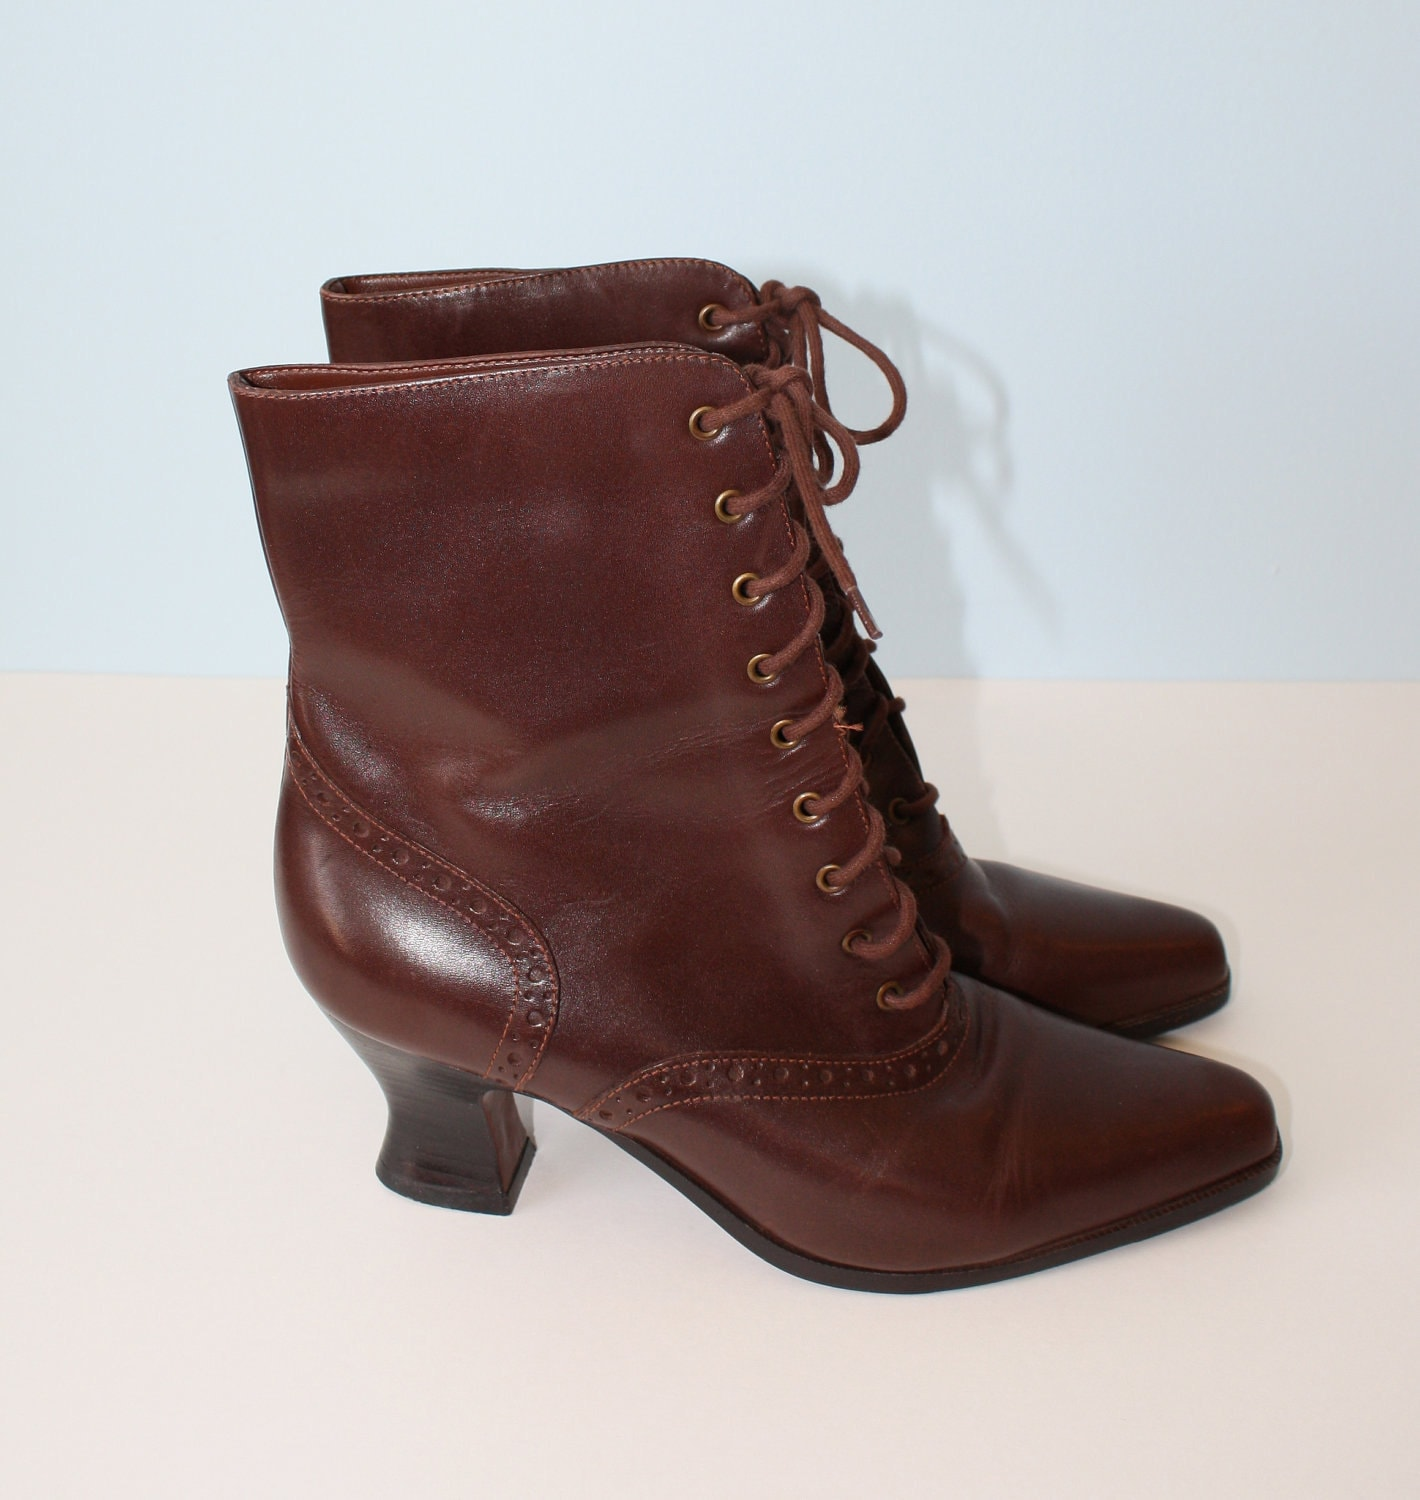 Victorian Lace Up Boots Vintage Brown Leather Granny Boots